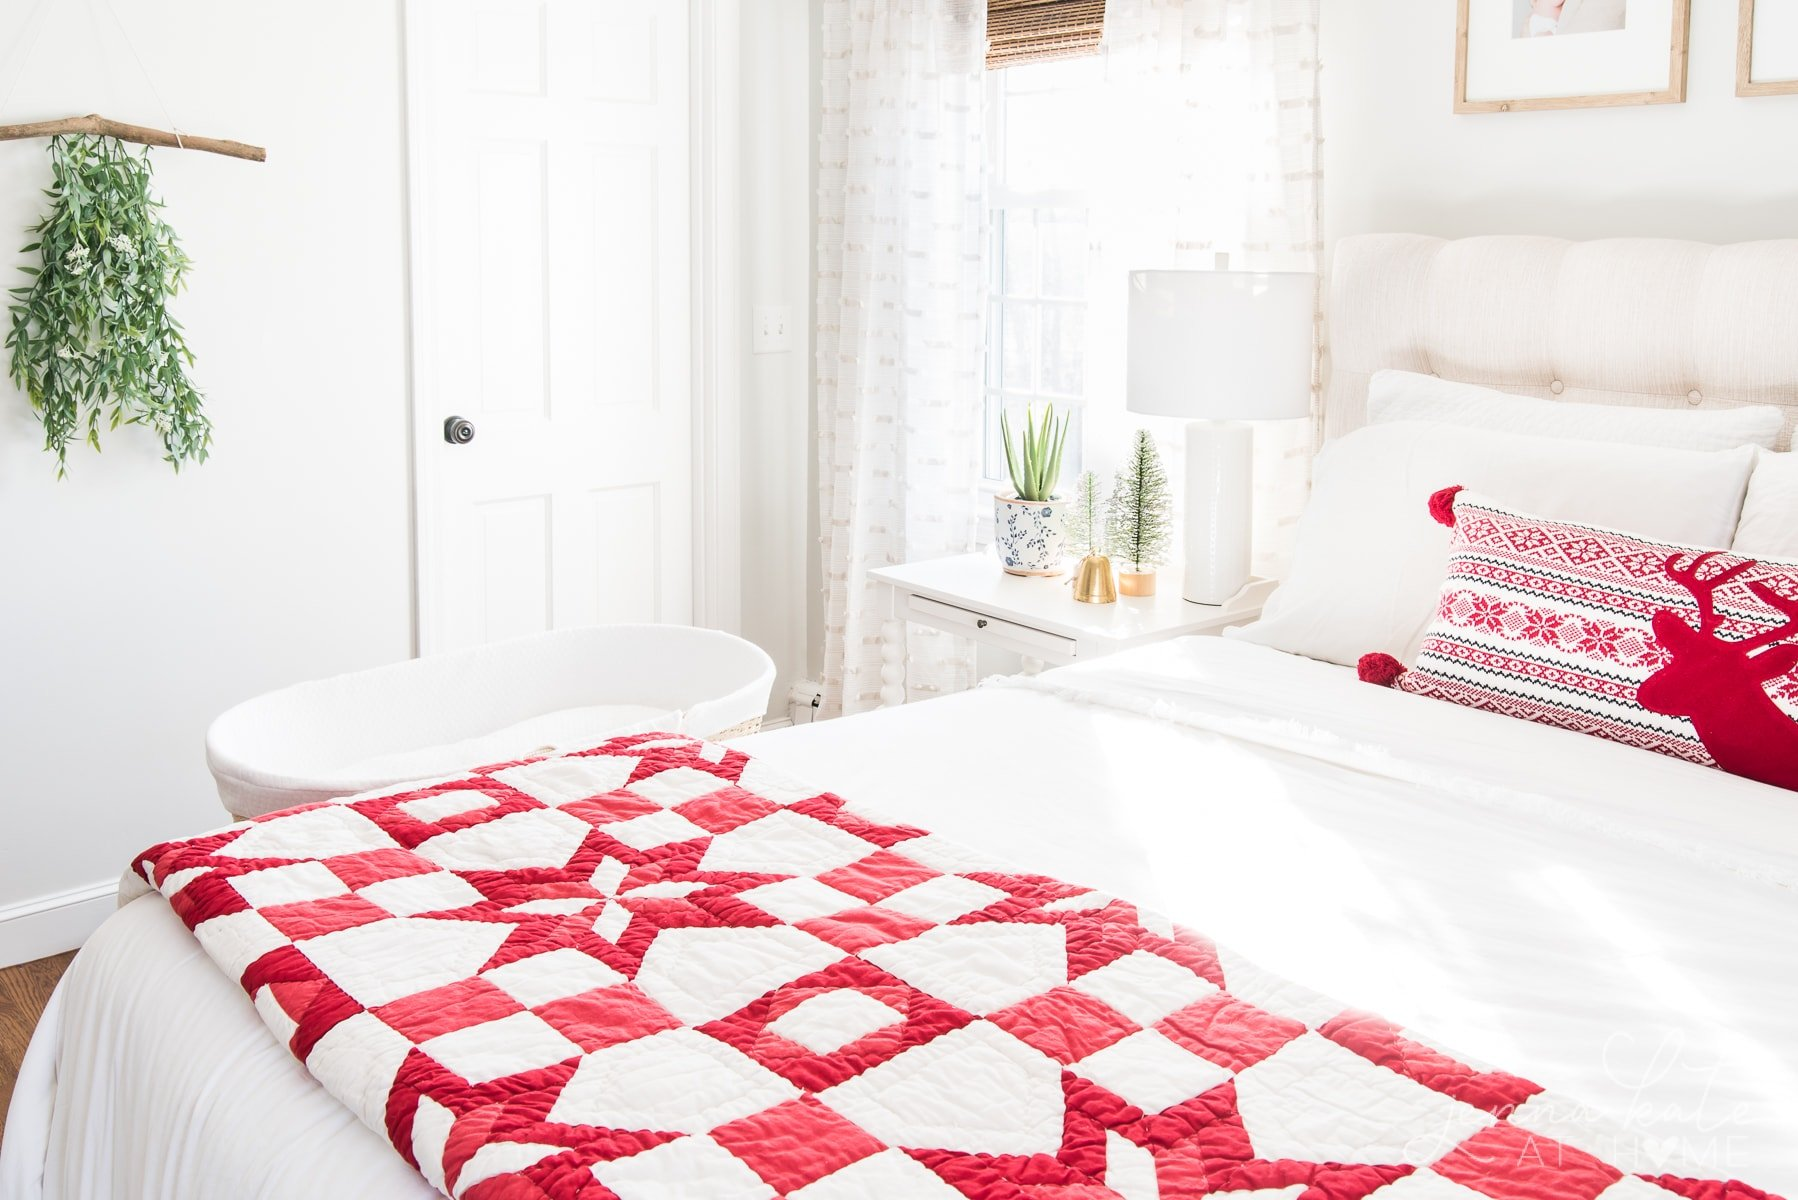 Bedroom with quilt on the bed